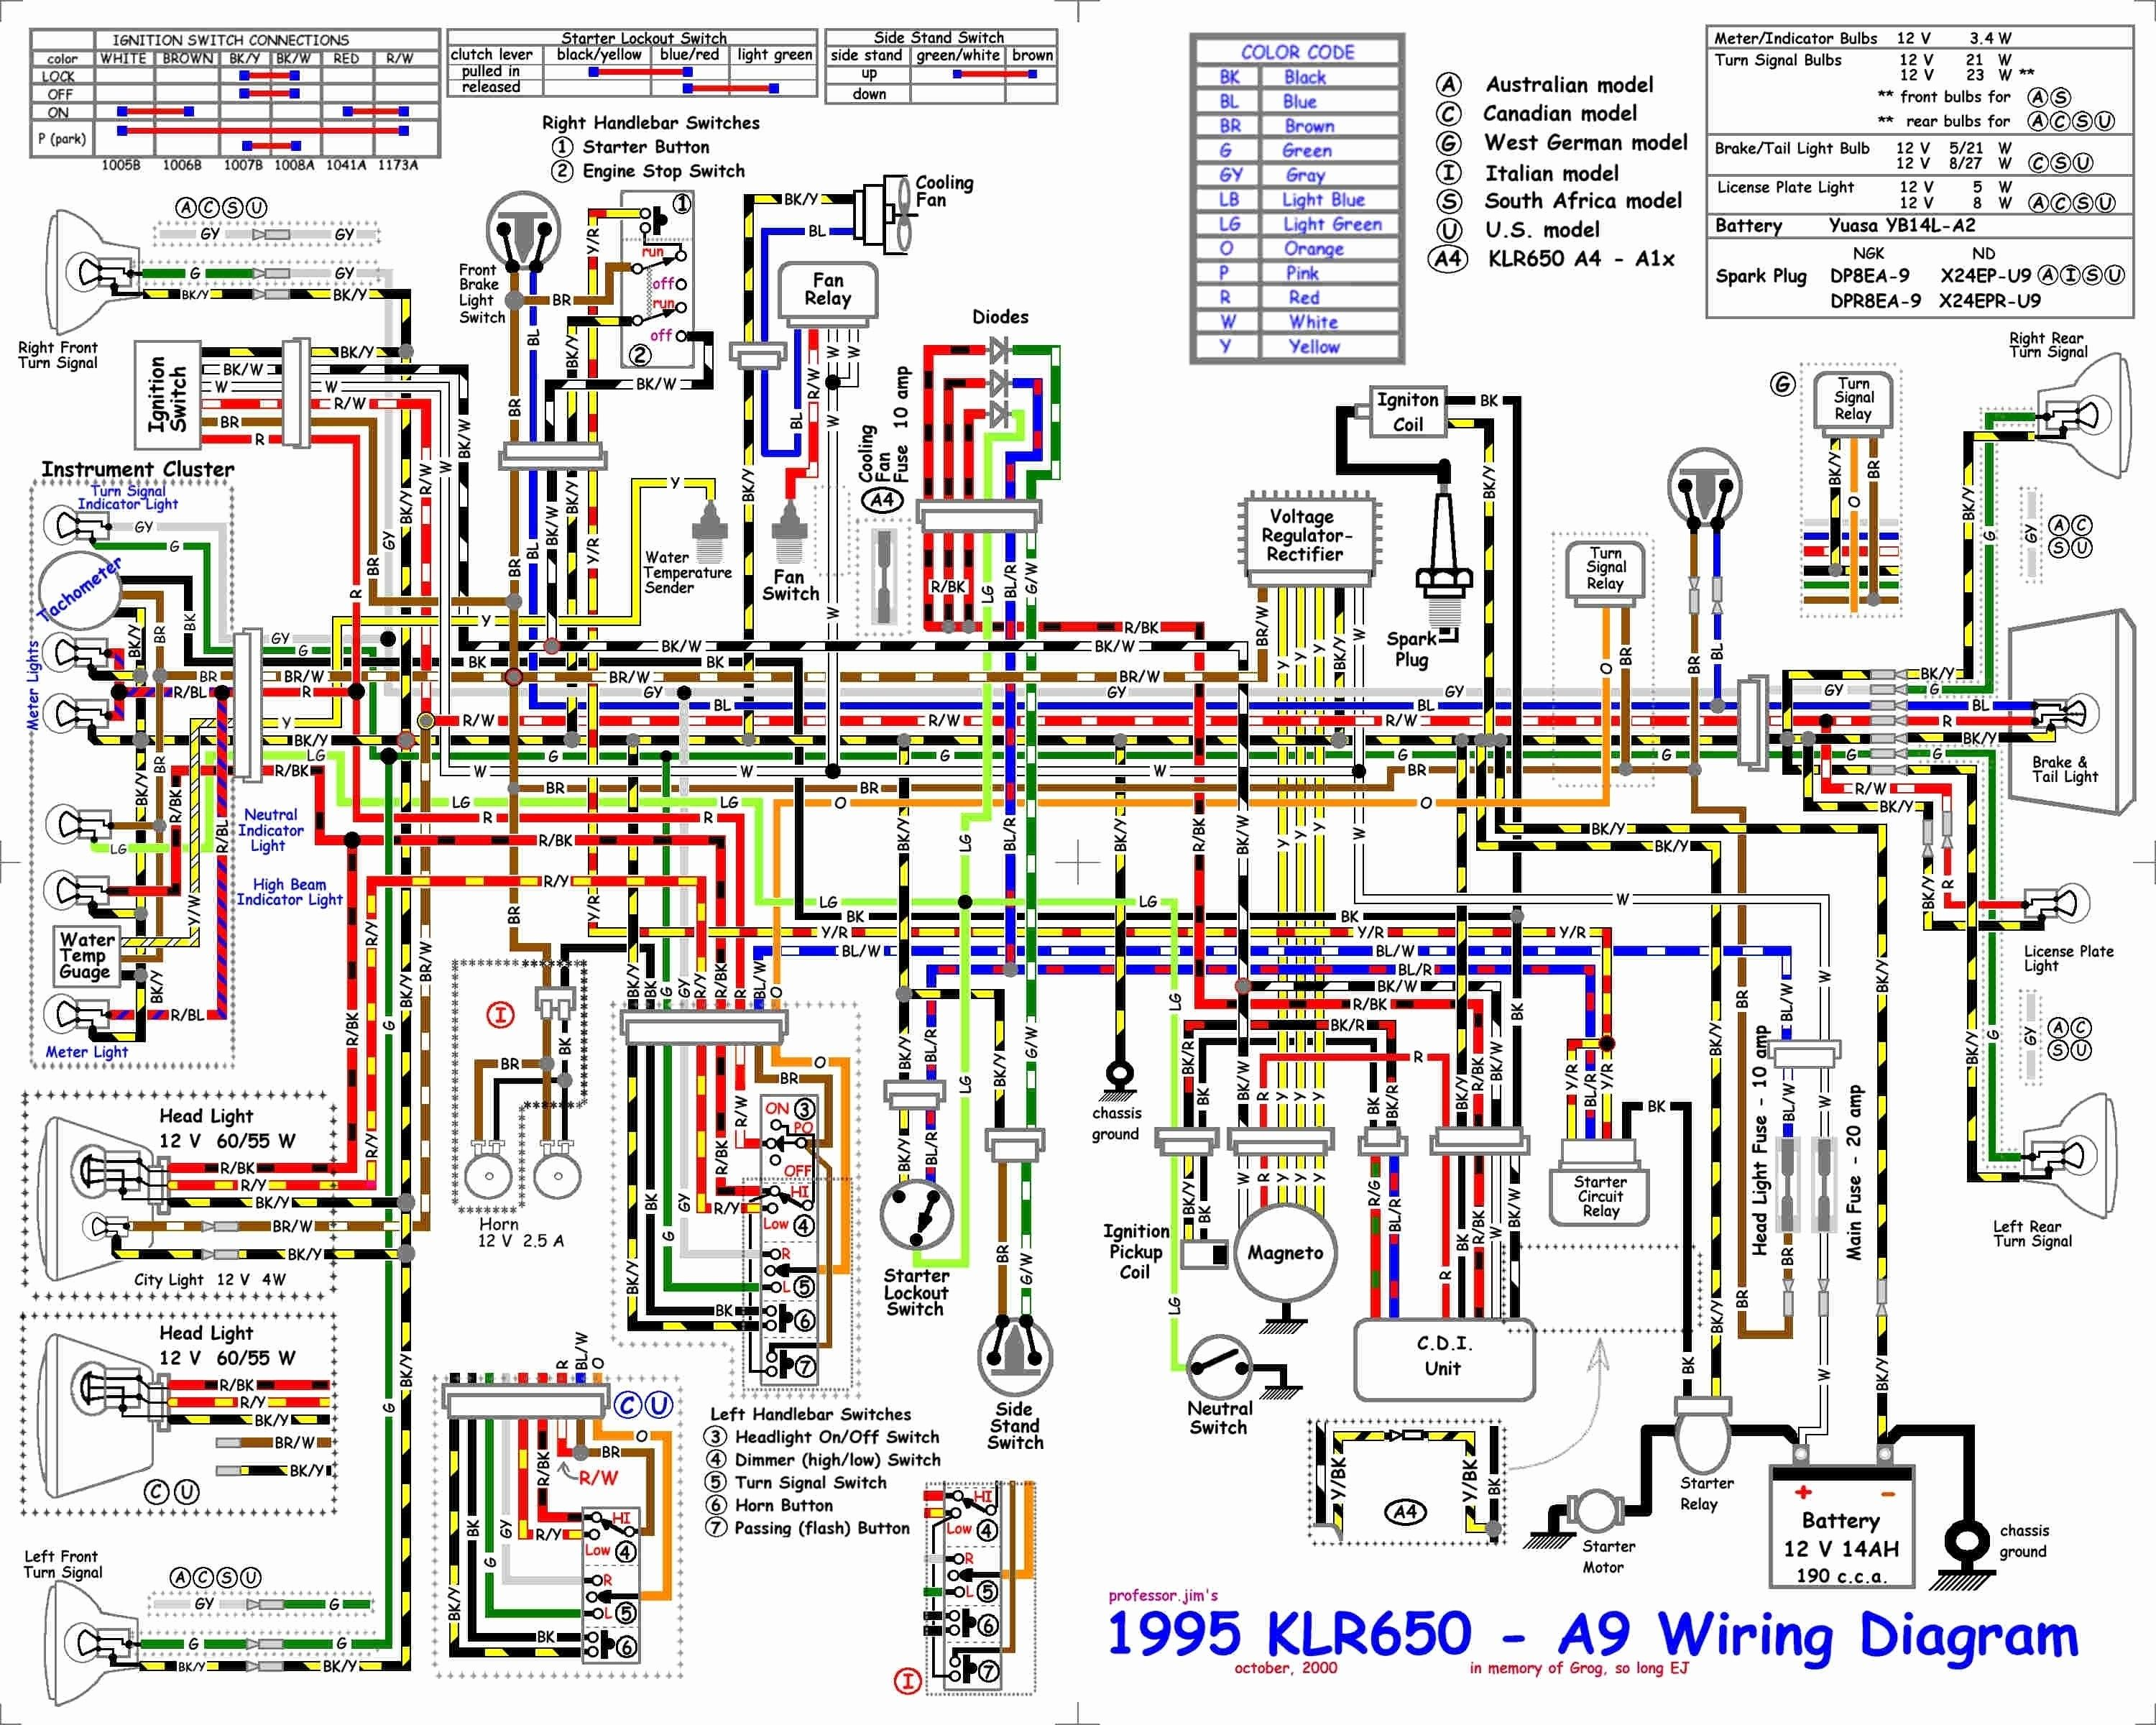 inspirational toyota wiring diagram abbreviations diagrams mechanical  design abbreviations and symbols inspirational toyota wiring diagram  abbreviations